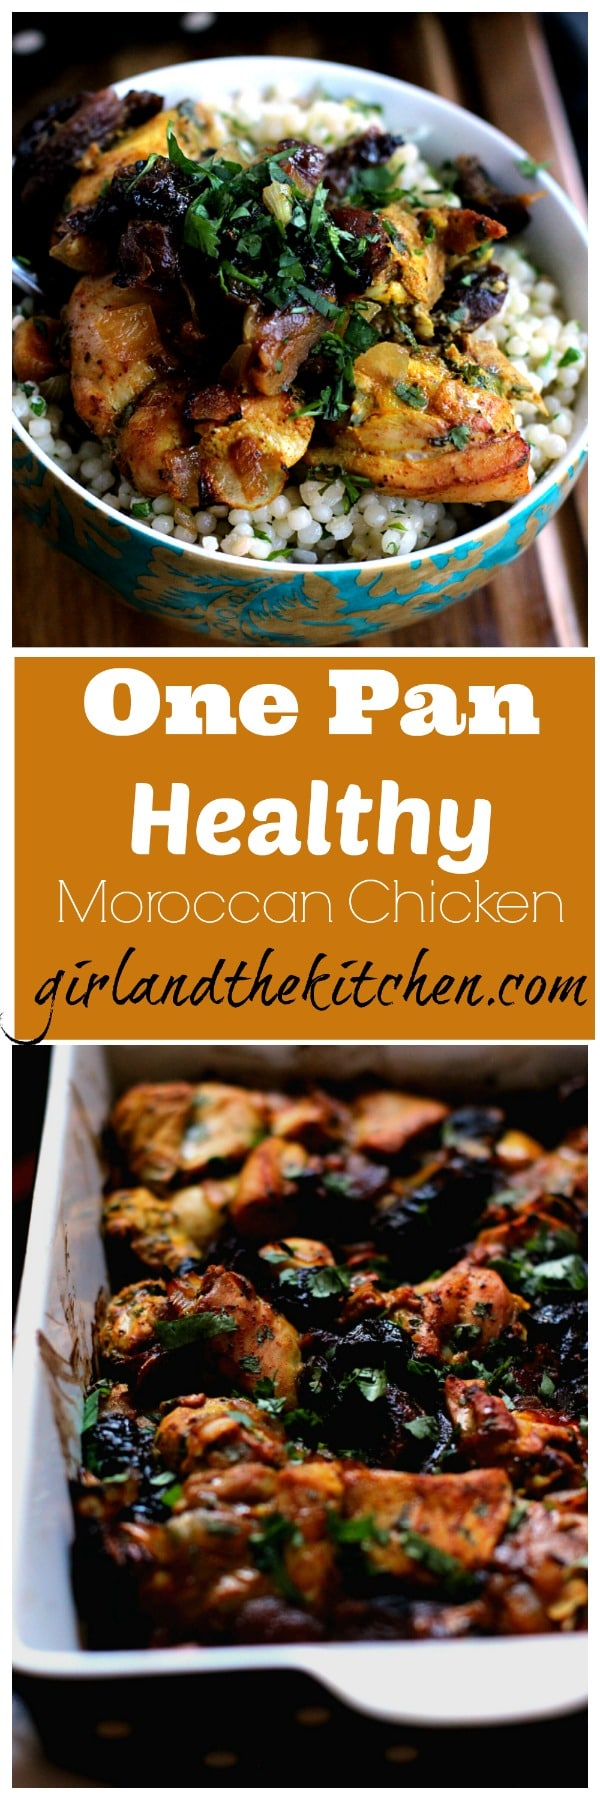 My one pan Moroccan Chicken recipe is super healthy and filled with the flavors of the Middle East. Best of all it's super easy, quick and freezer friendly.